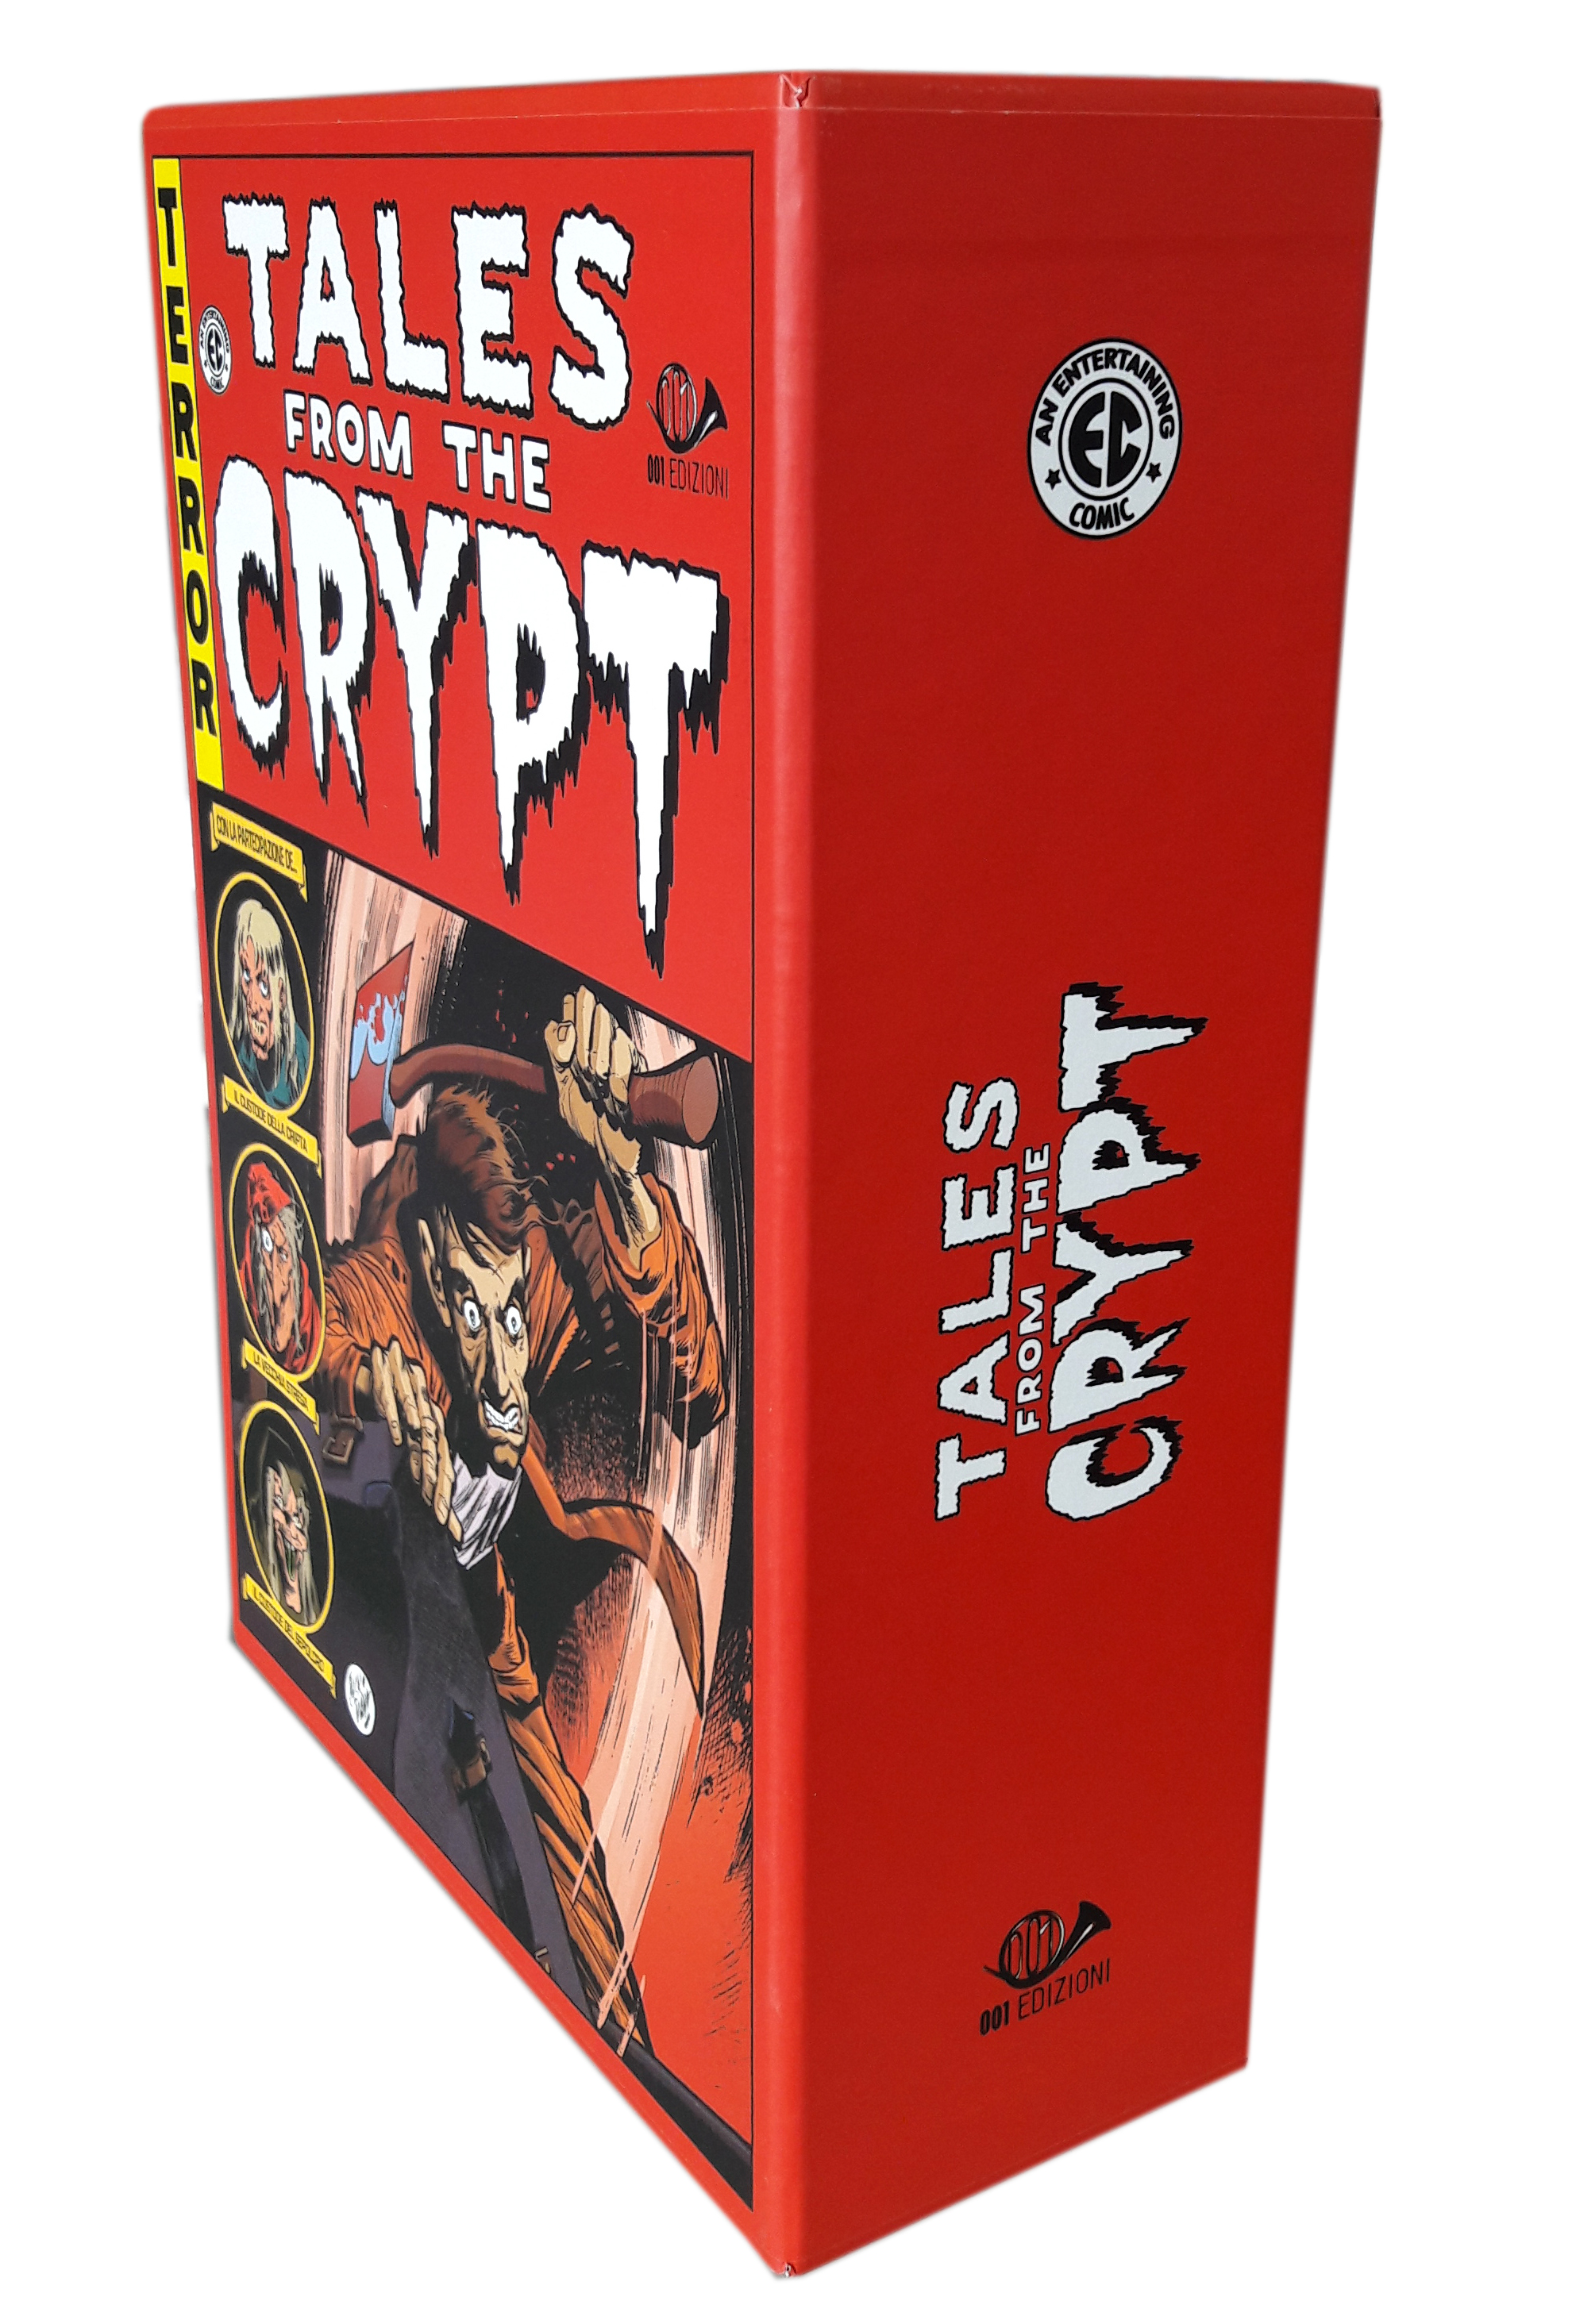 Cofanetto Tales from the Crypt pieno 1